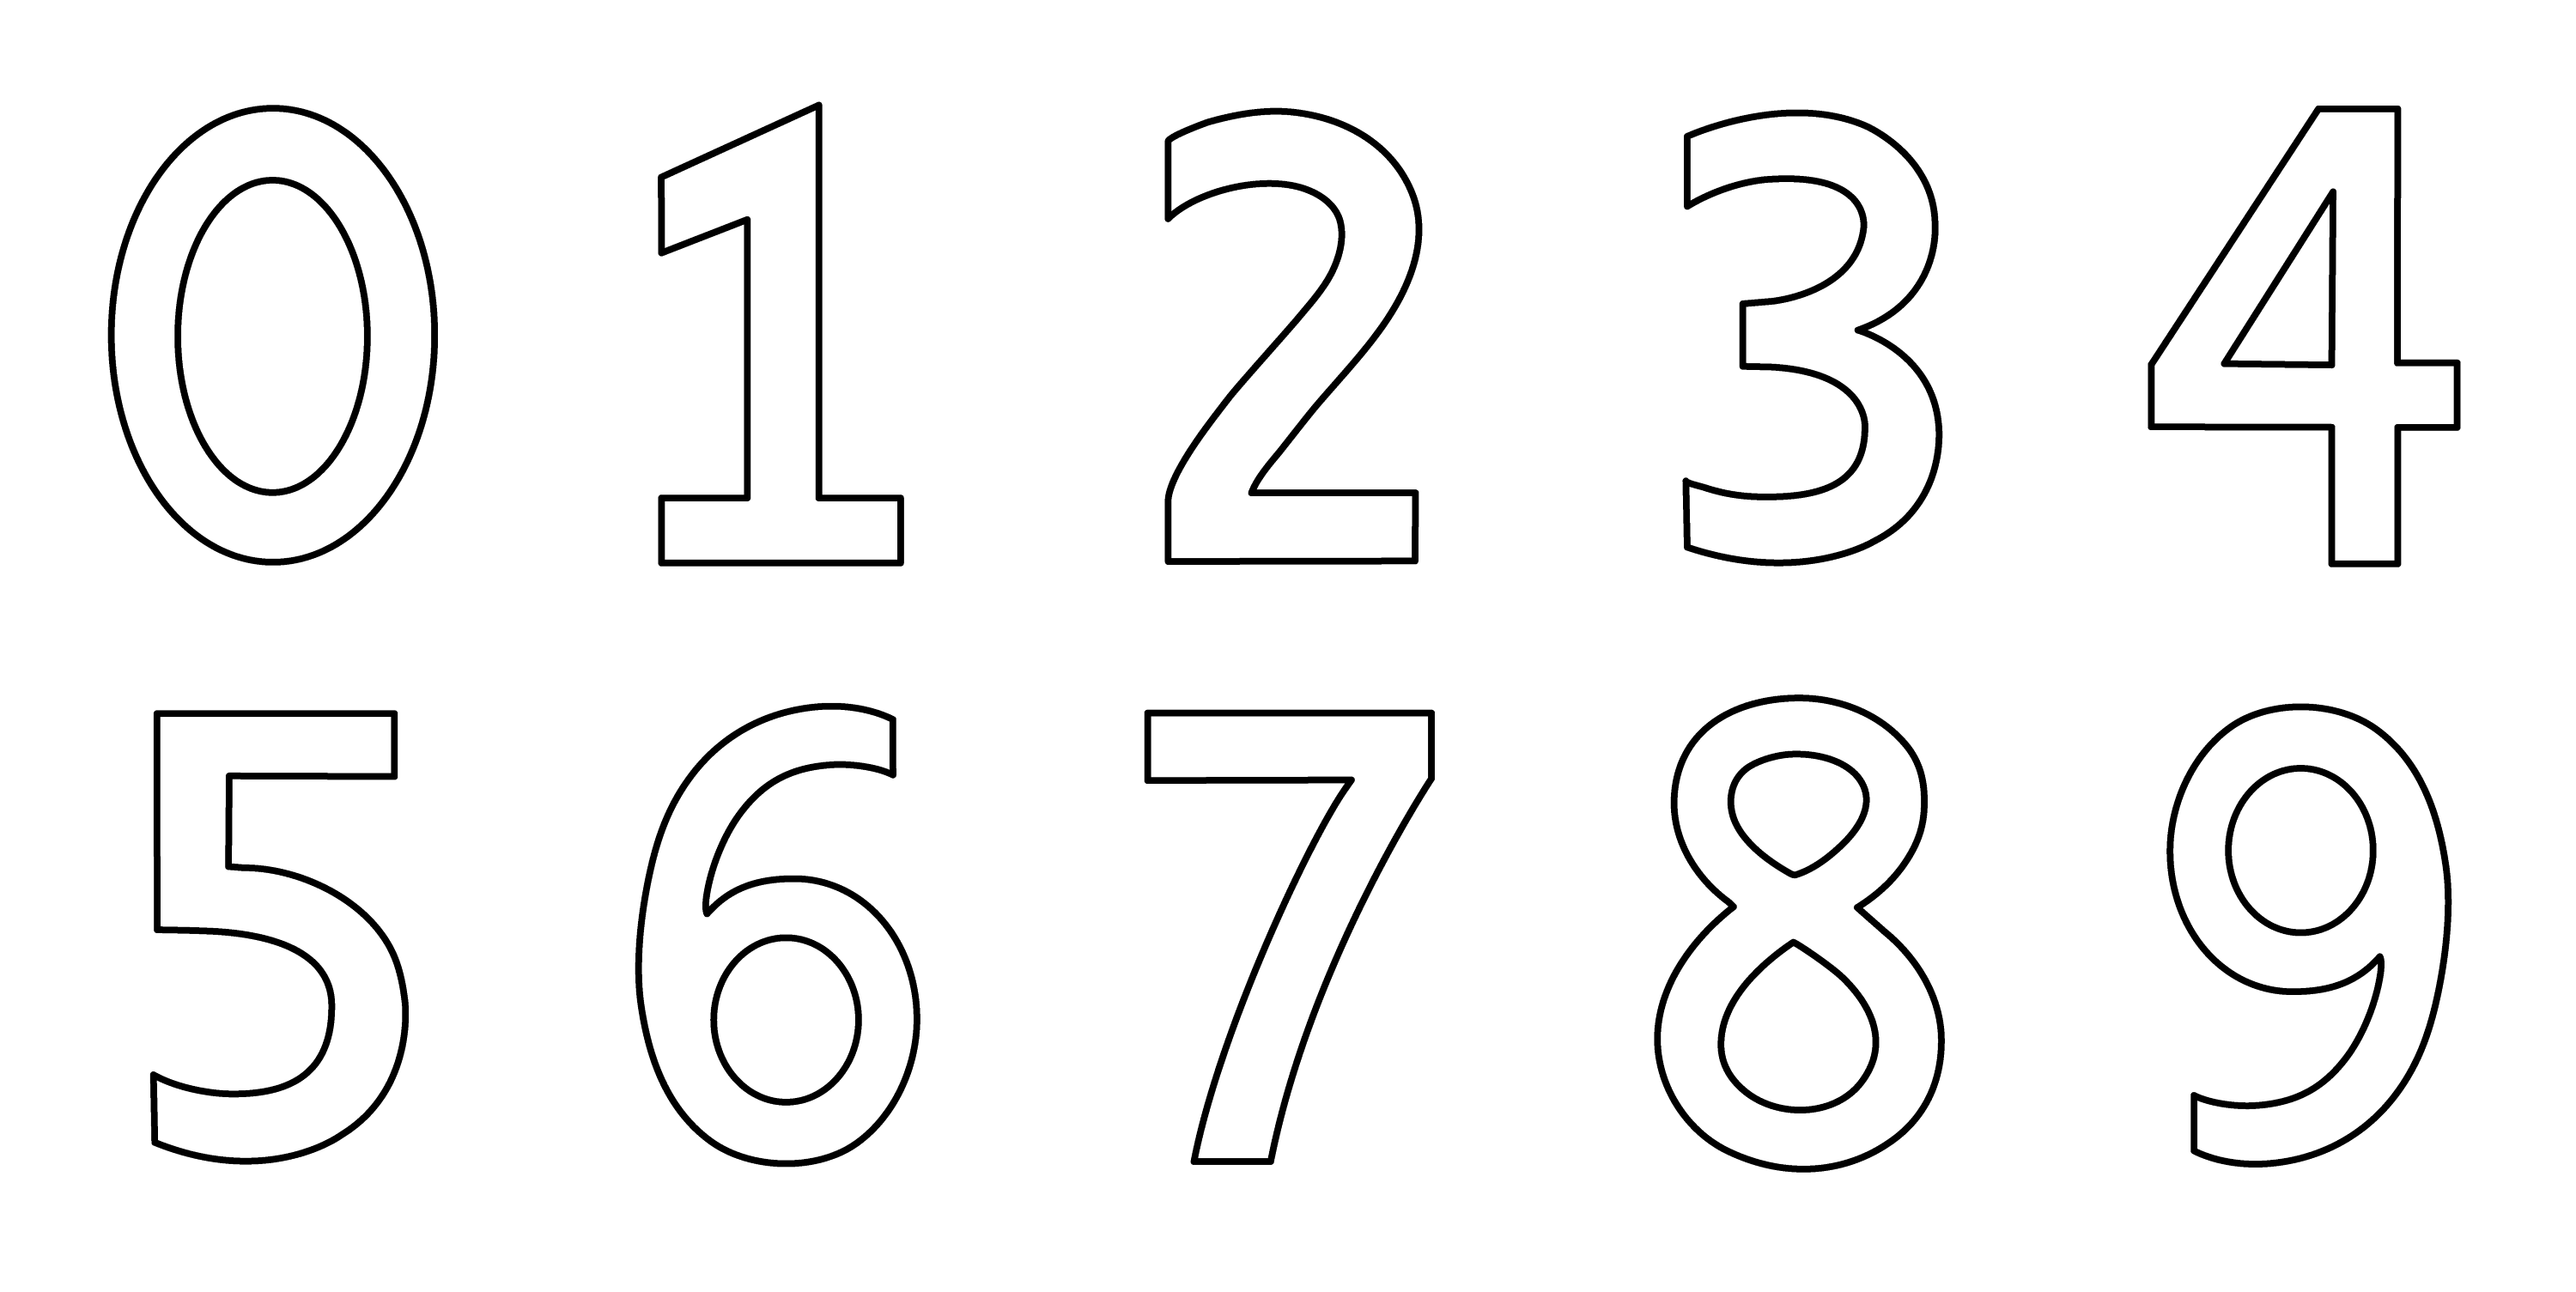 coloring pages numbers unseen art org